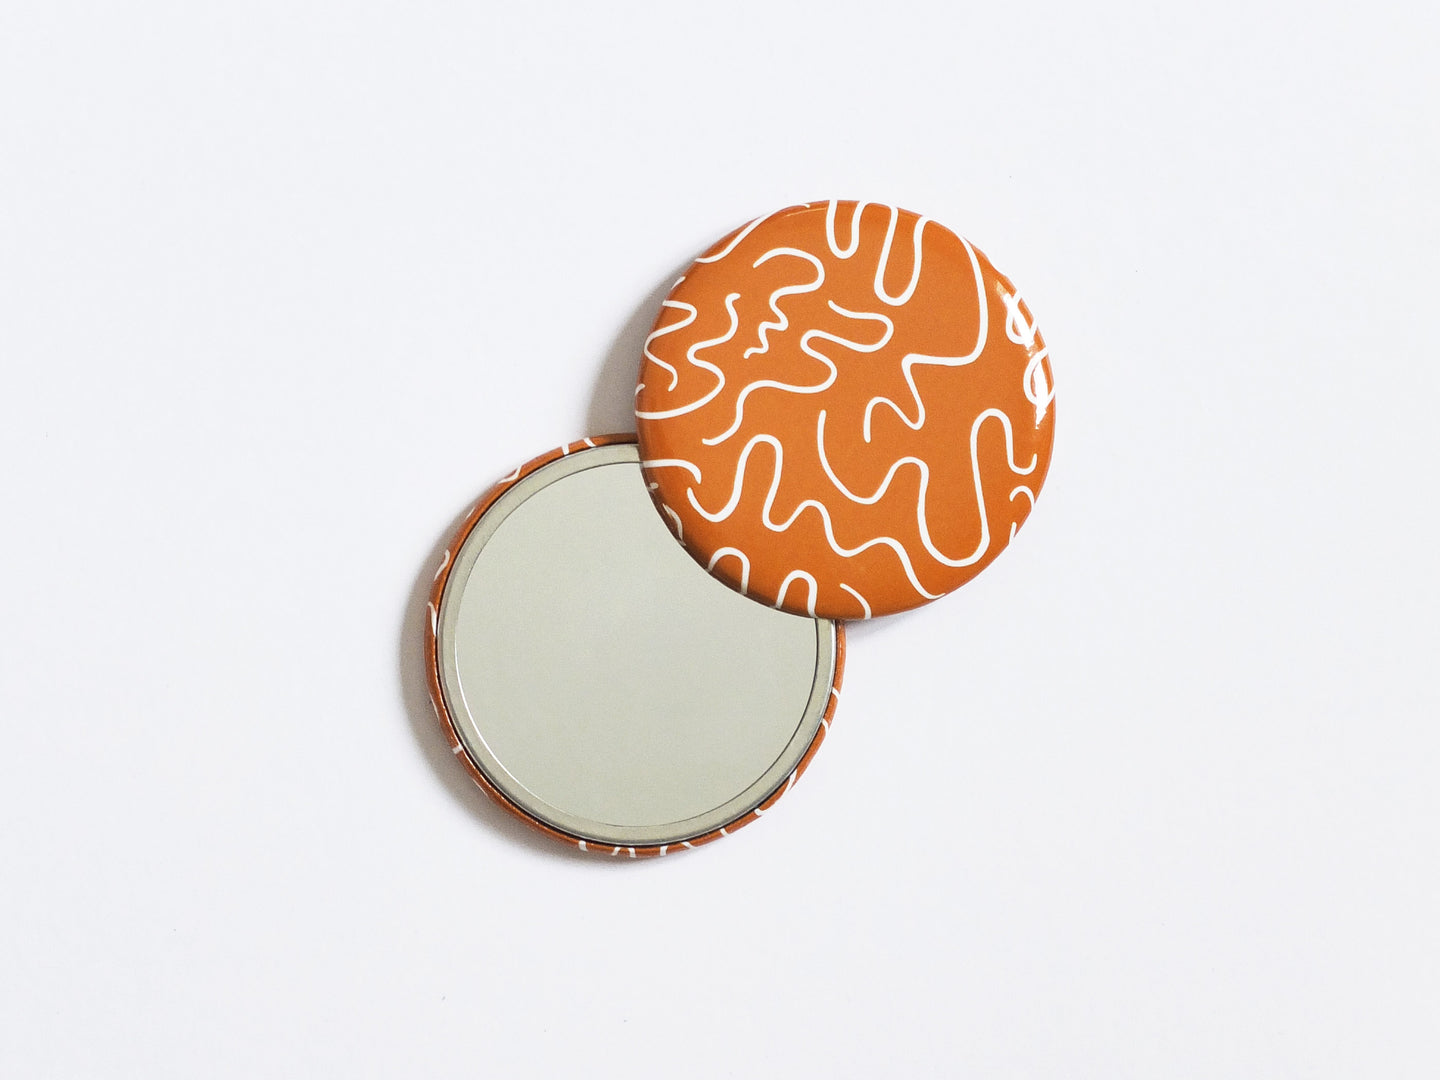 Patterned Pocket Mirror - Rust Squiggle Print